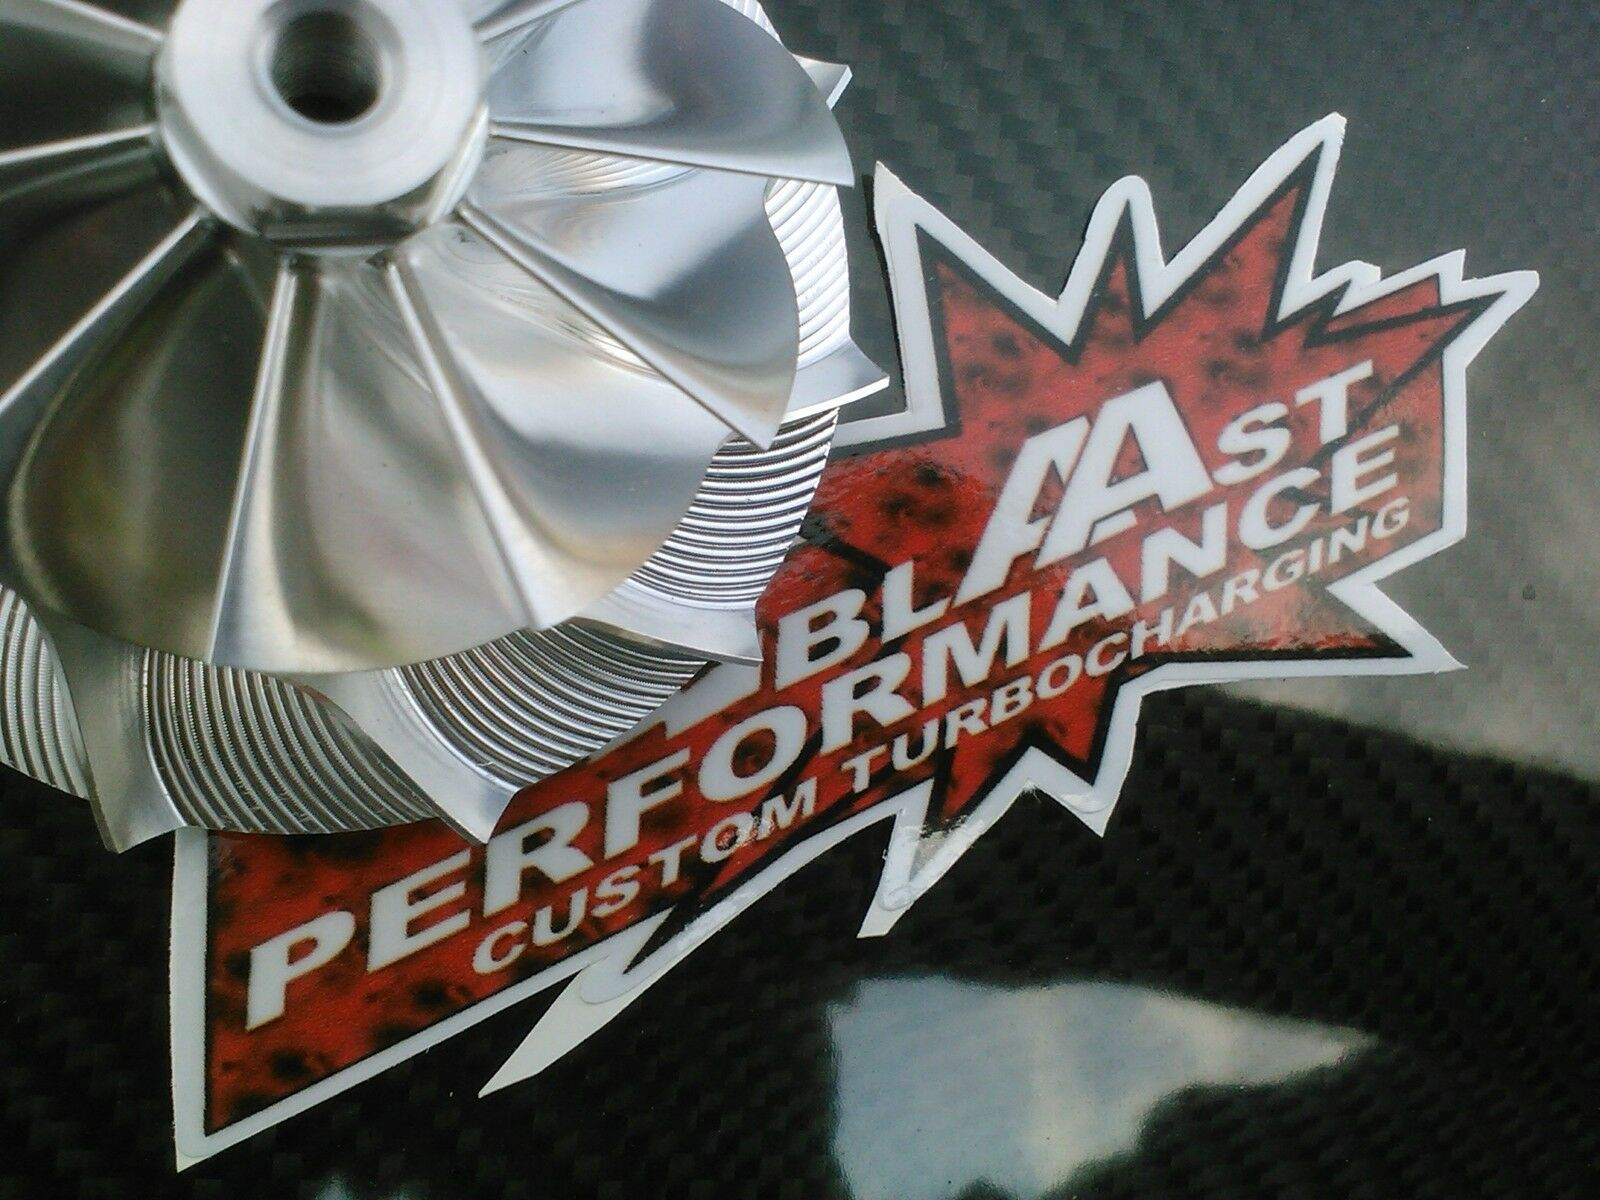 Blaast Performance Turbo shop